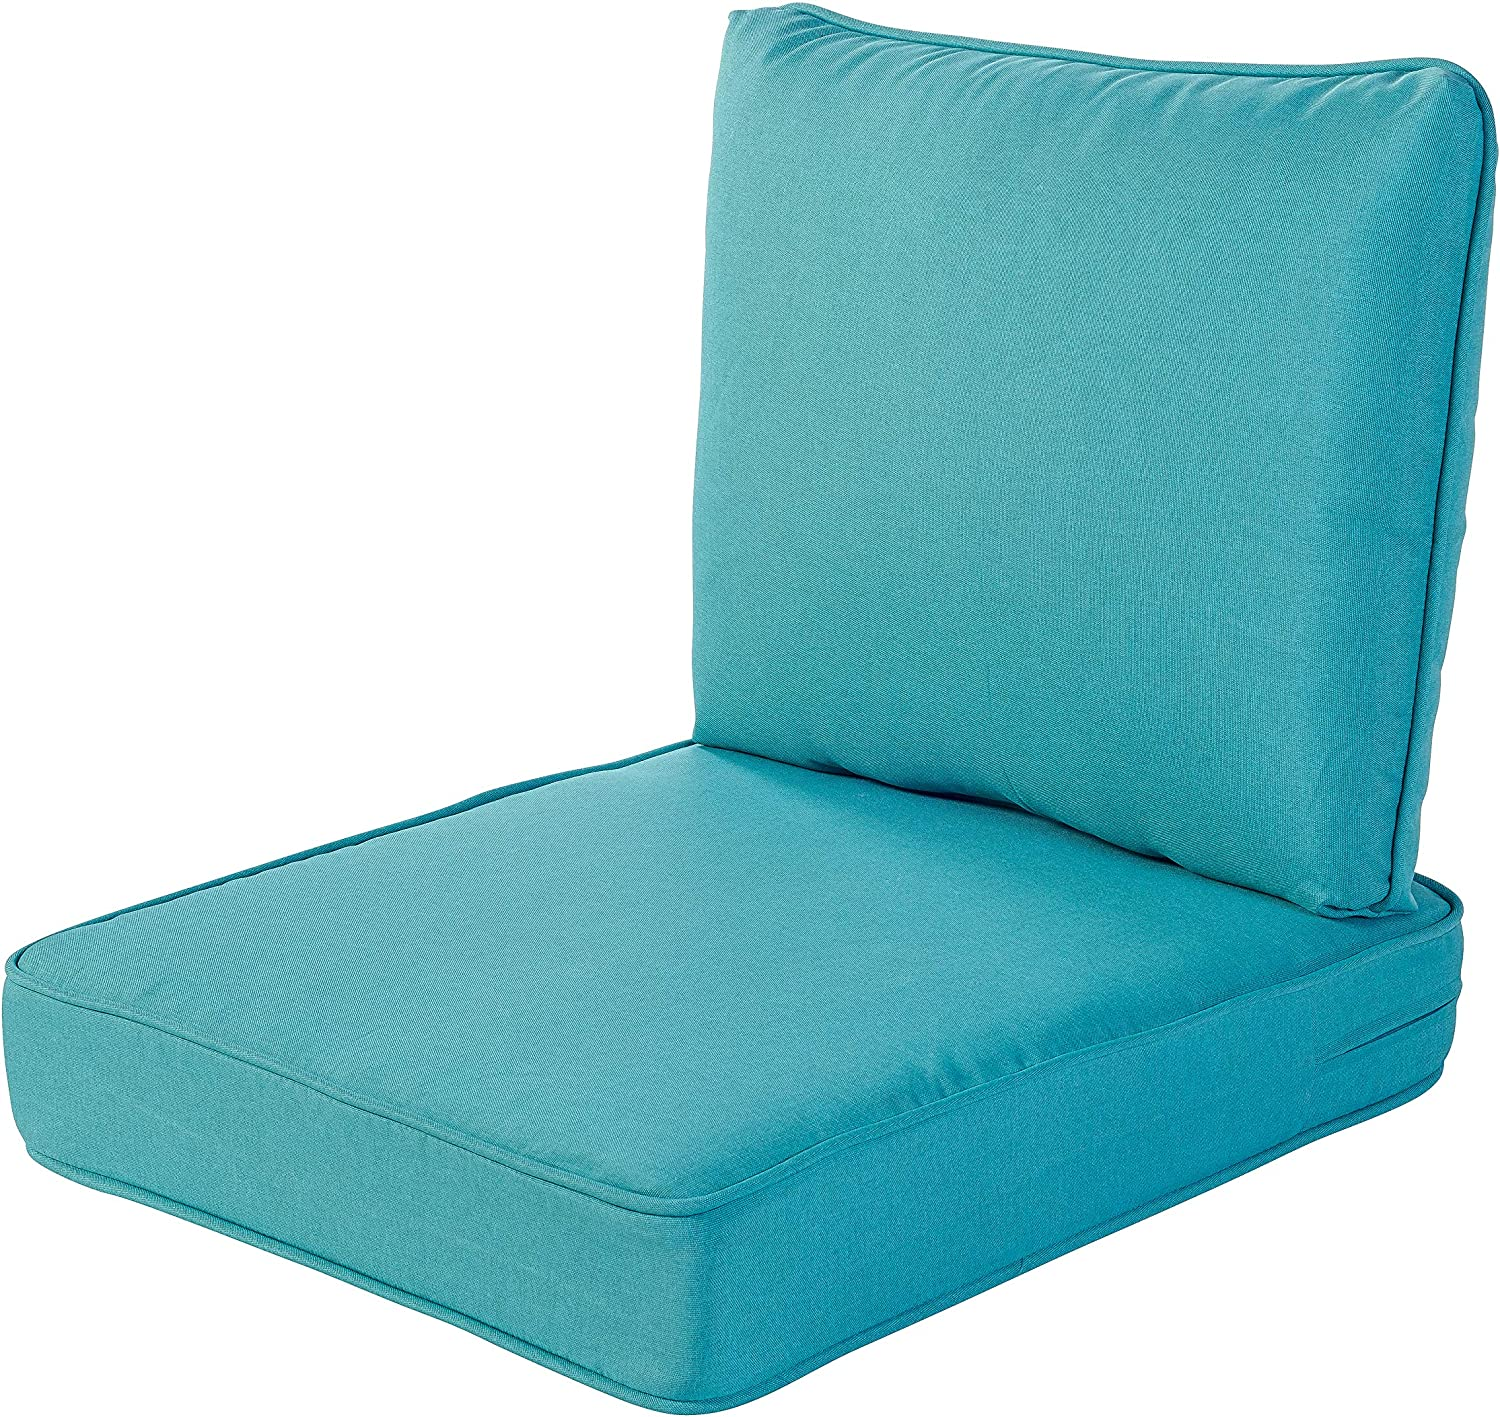 Quality Outdoor Living 29-TQ02SB All-Weather Deep Seating Chair Cushion, 23 x 26, Turquoise